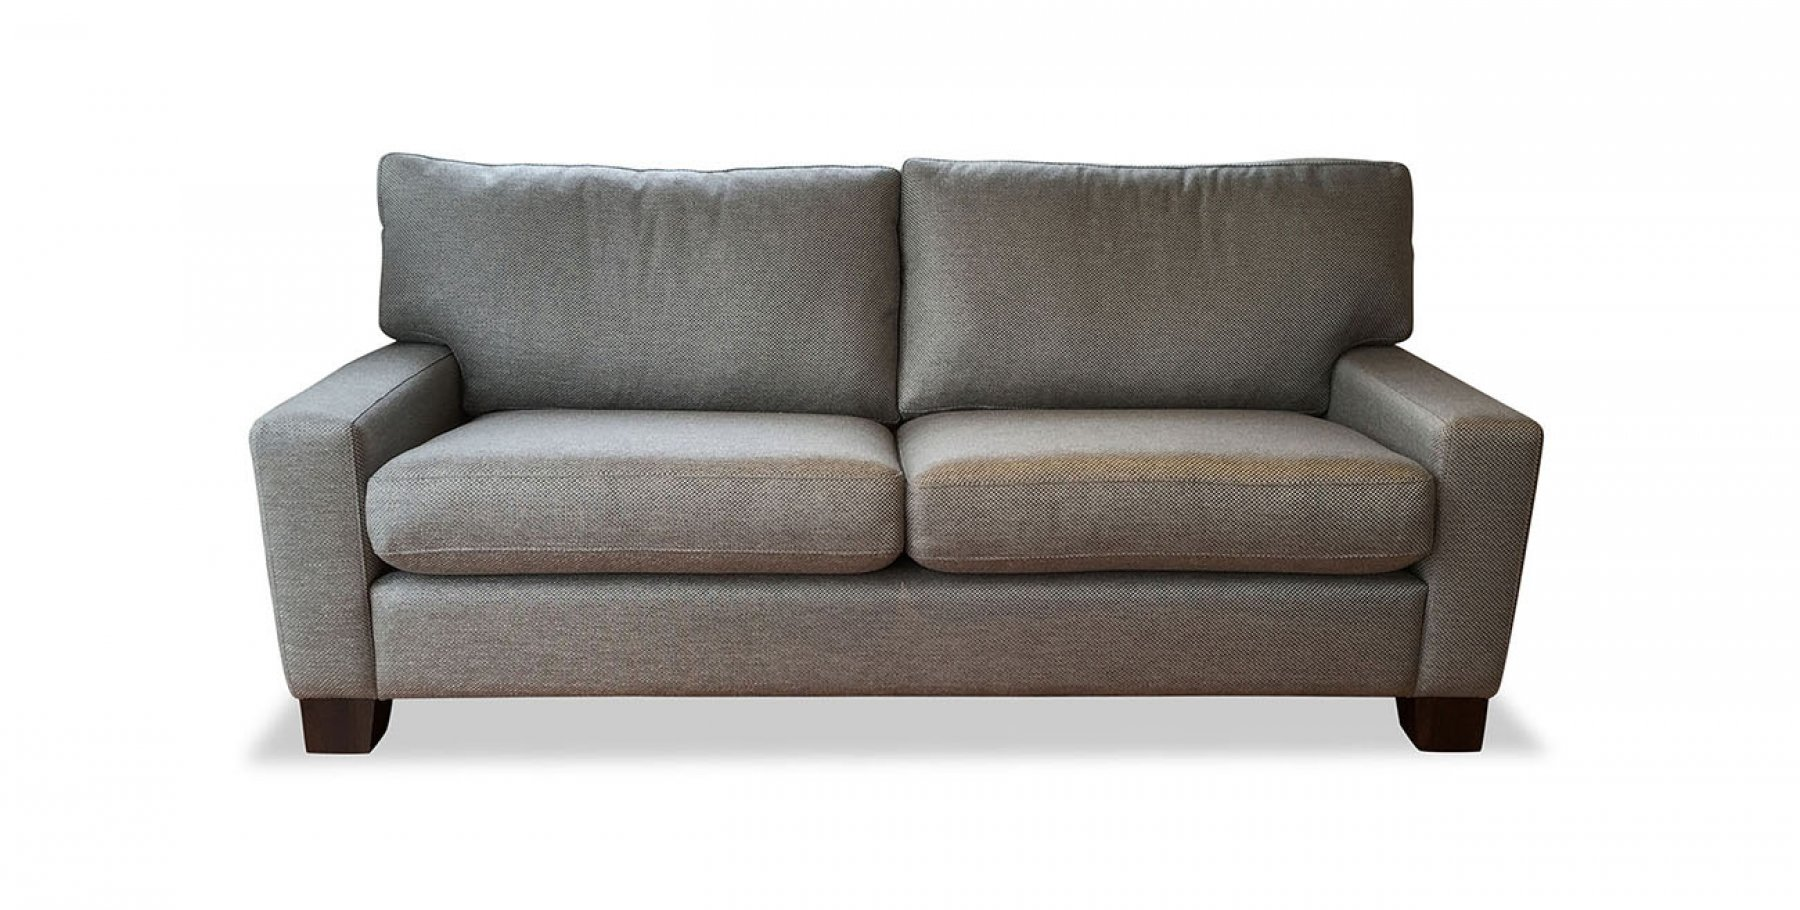 Sofa Bed Eastbourne Eastbourne Sofa By Gracious Living